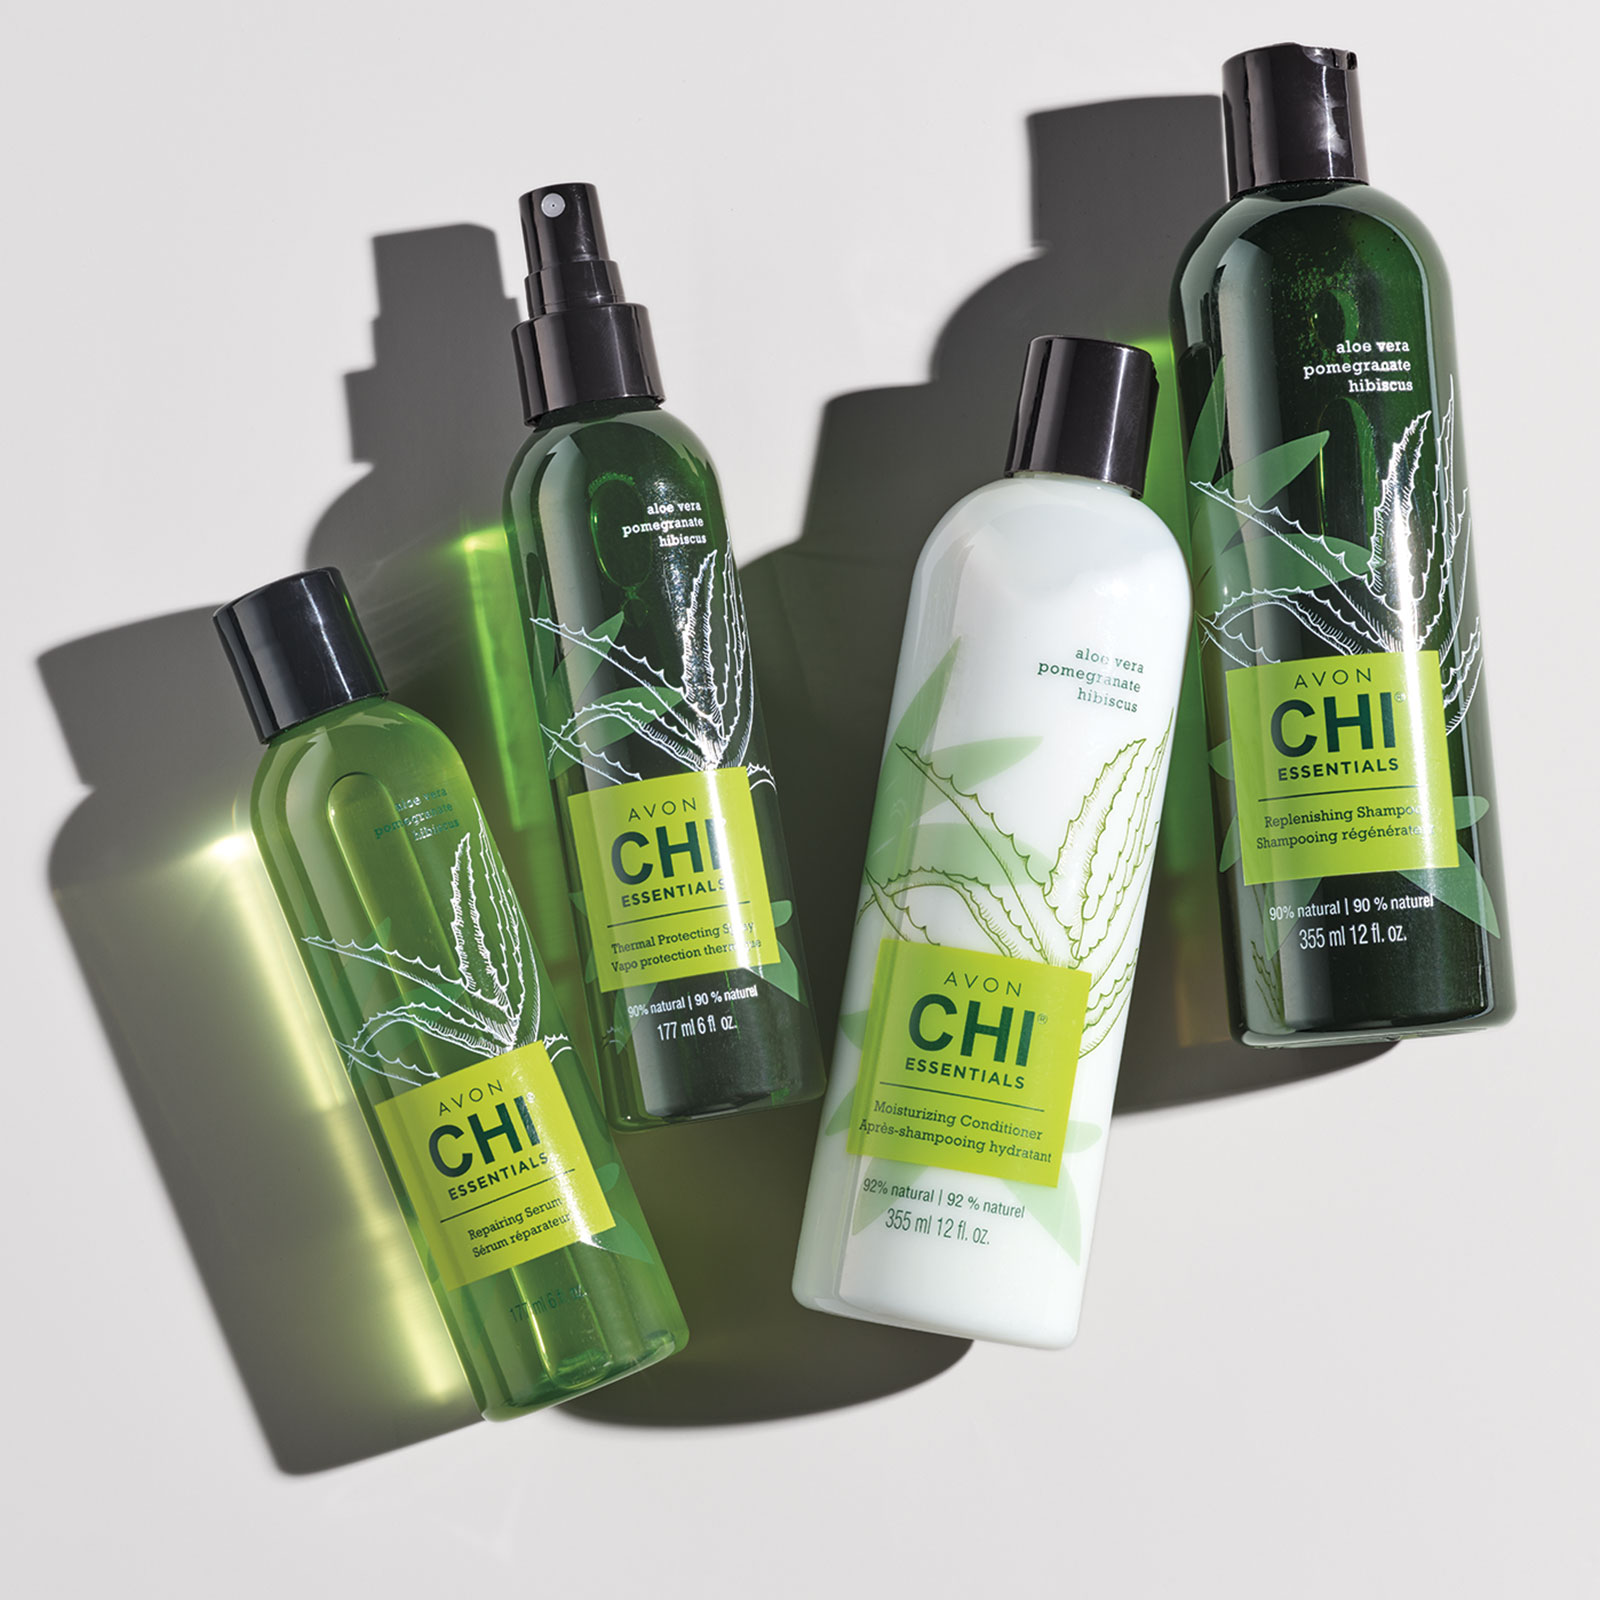 See the difference botanicals can make in your haircare. CHI Essentials is formulated with aloe vera, pomegranate, hibiscus and other nutrient-rich ingredients to lock in moisture, strengthen hair, increase elasticity and smooth split ends and frizz. Discover CHI.